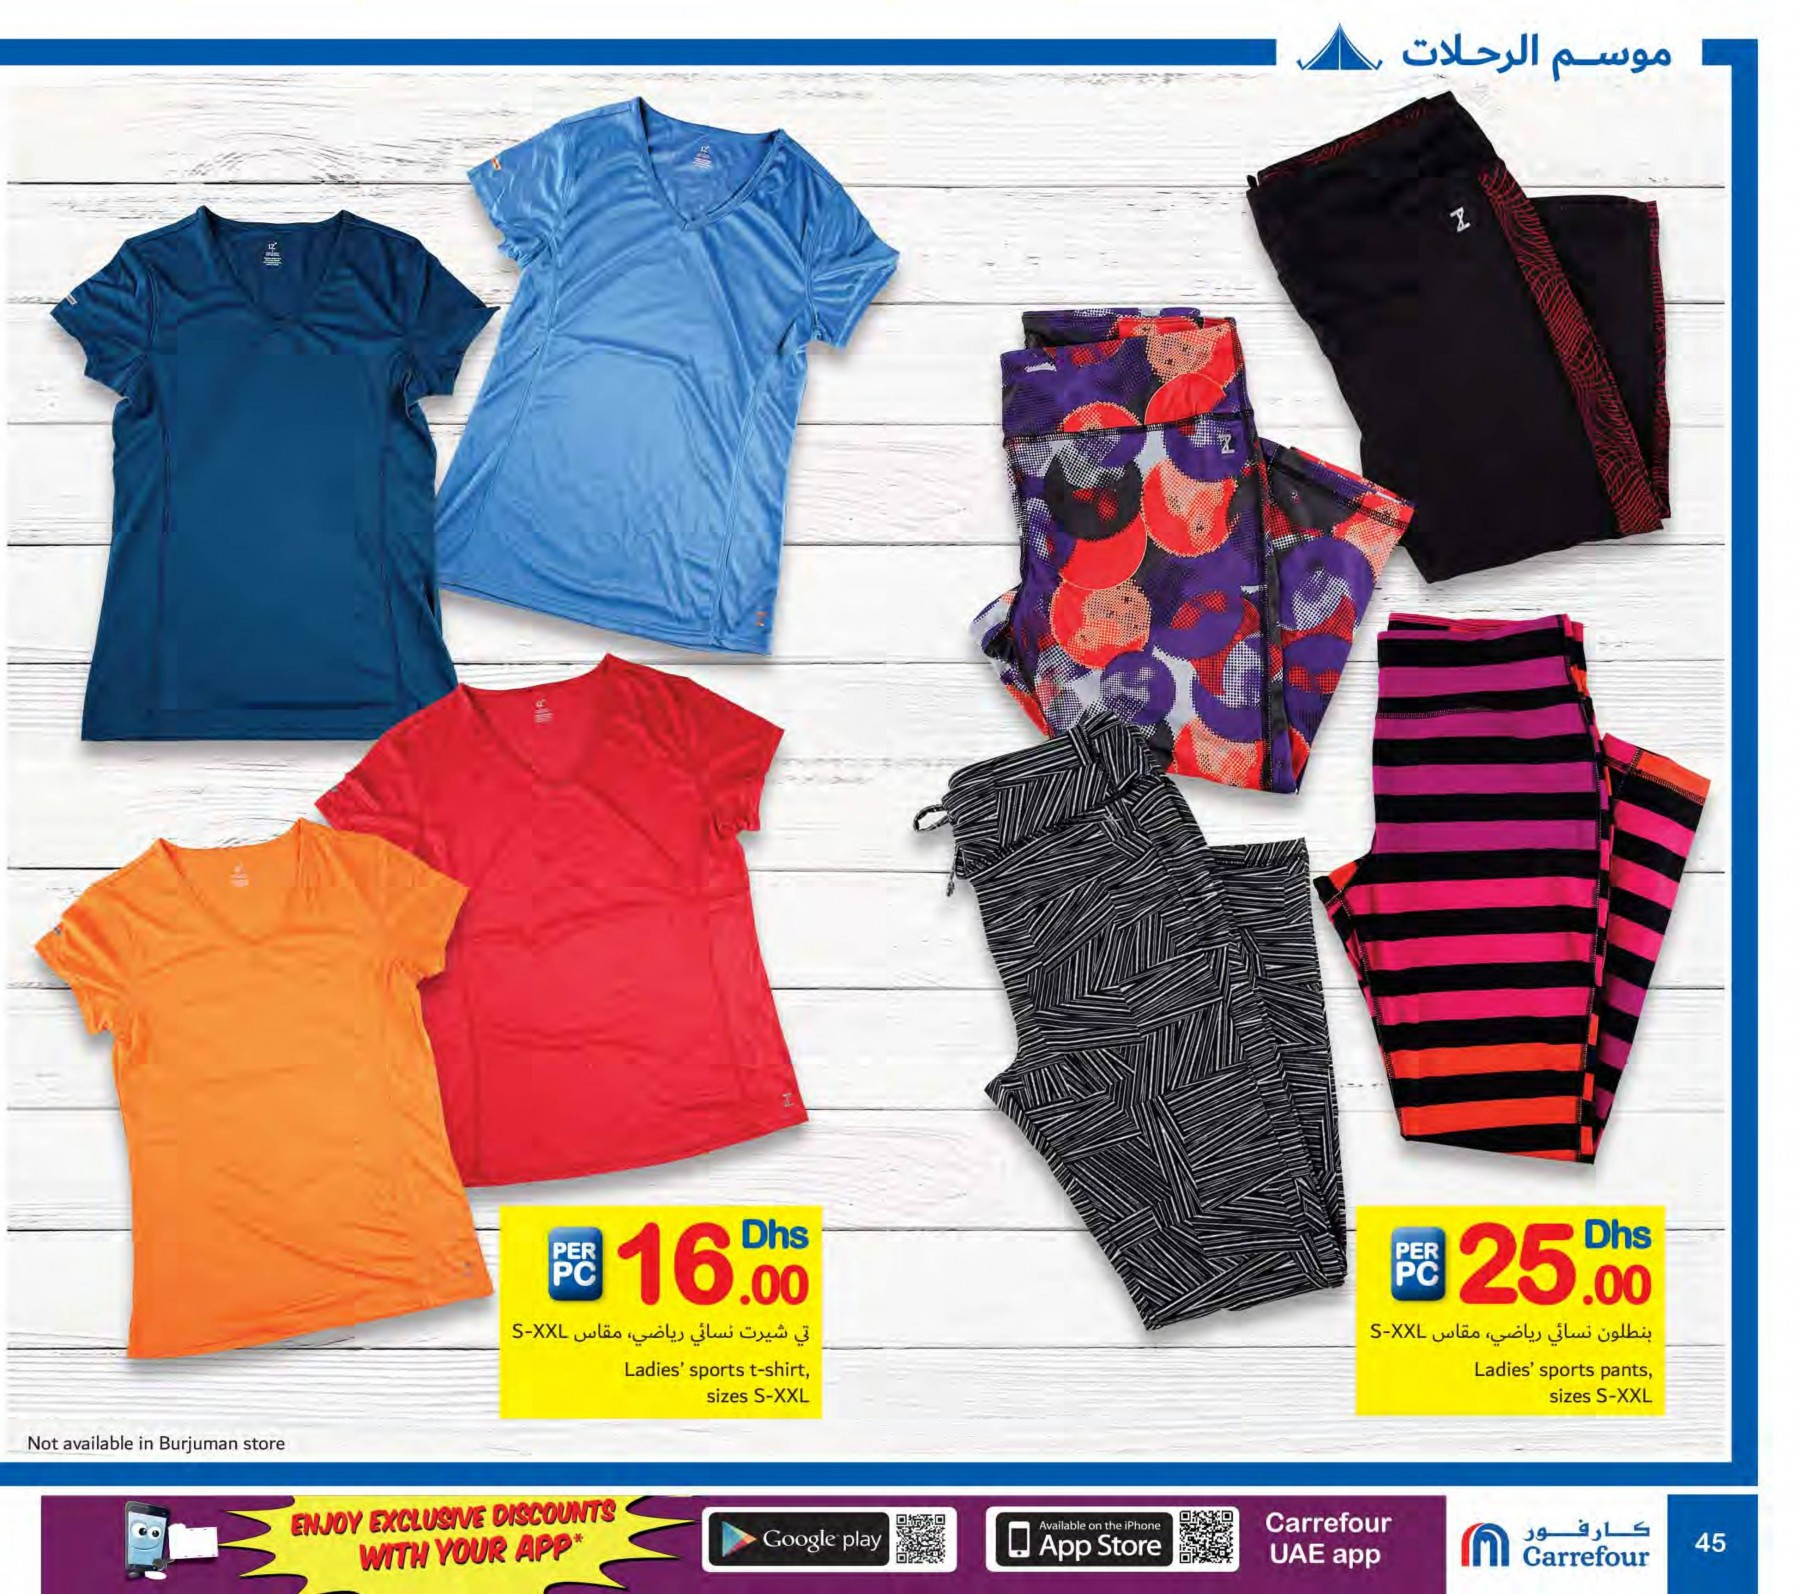 Enjoy Great Outdoors Offers from Carrefour until 11th October